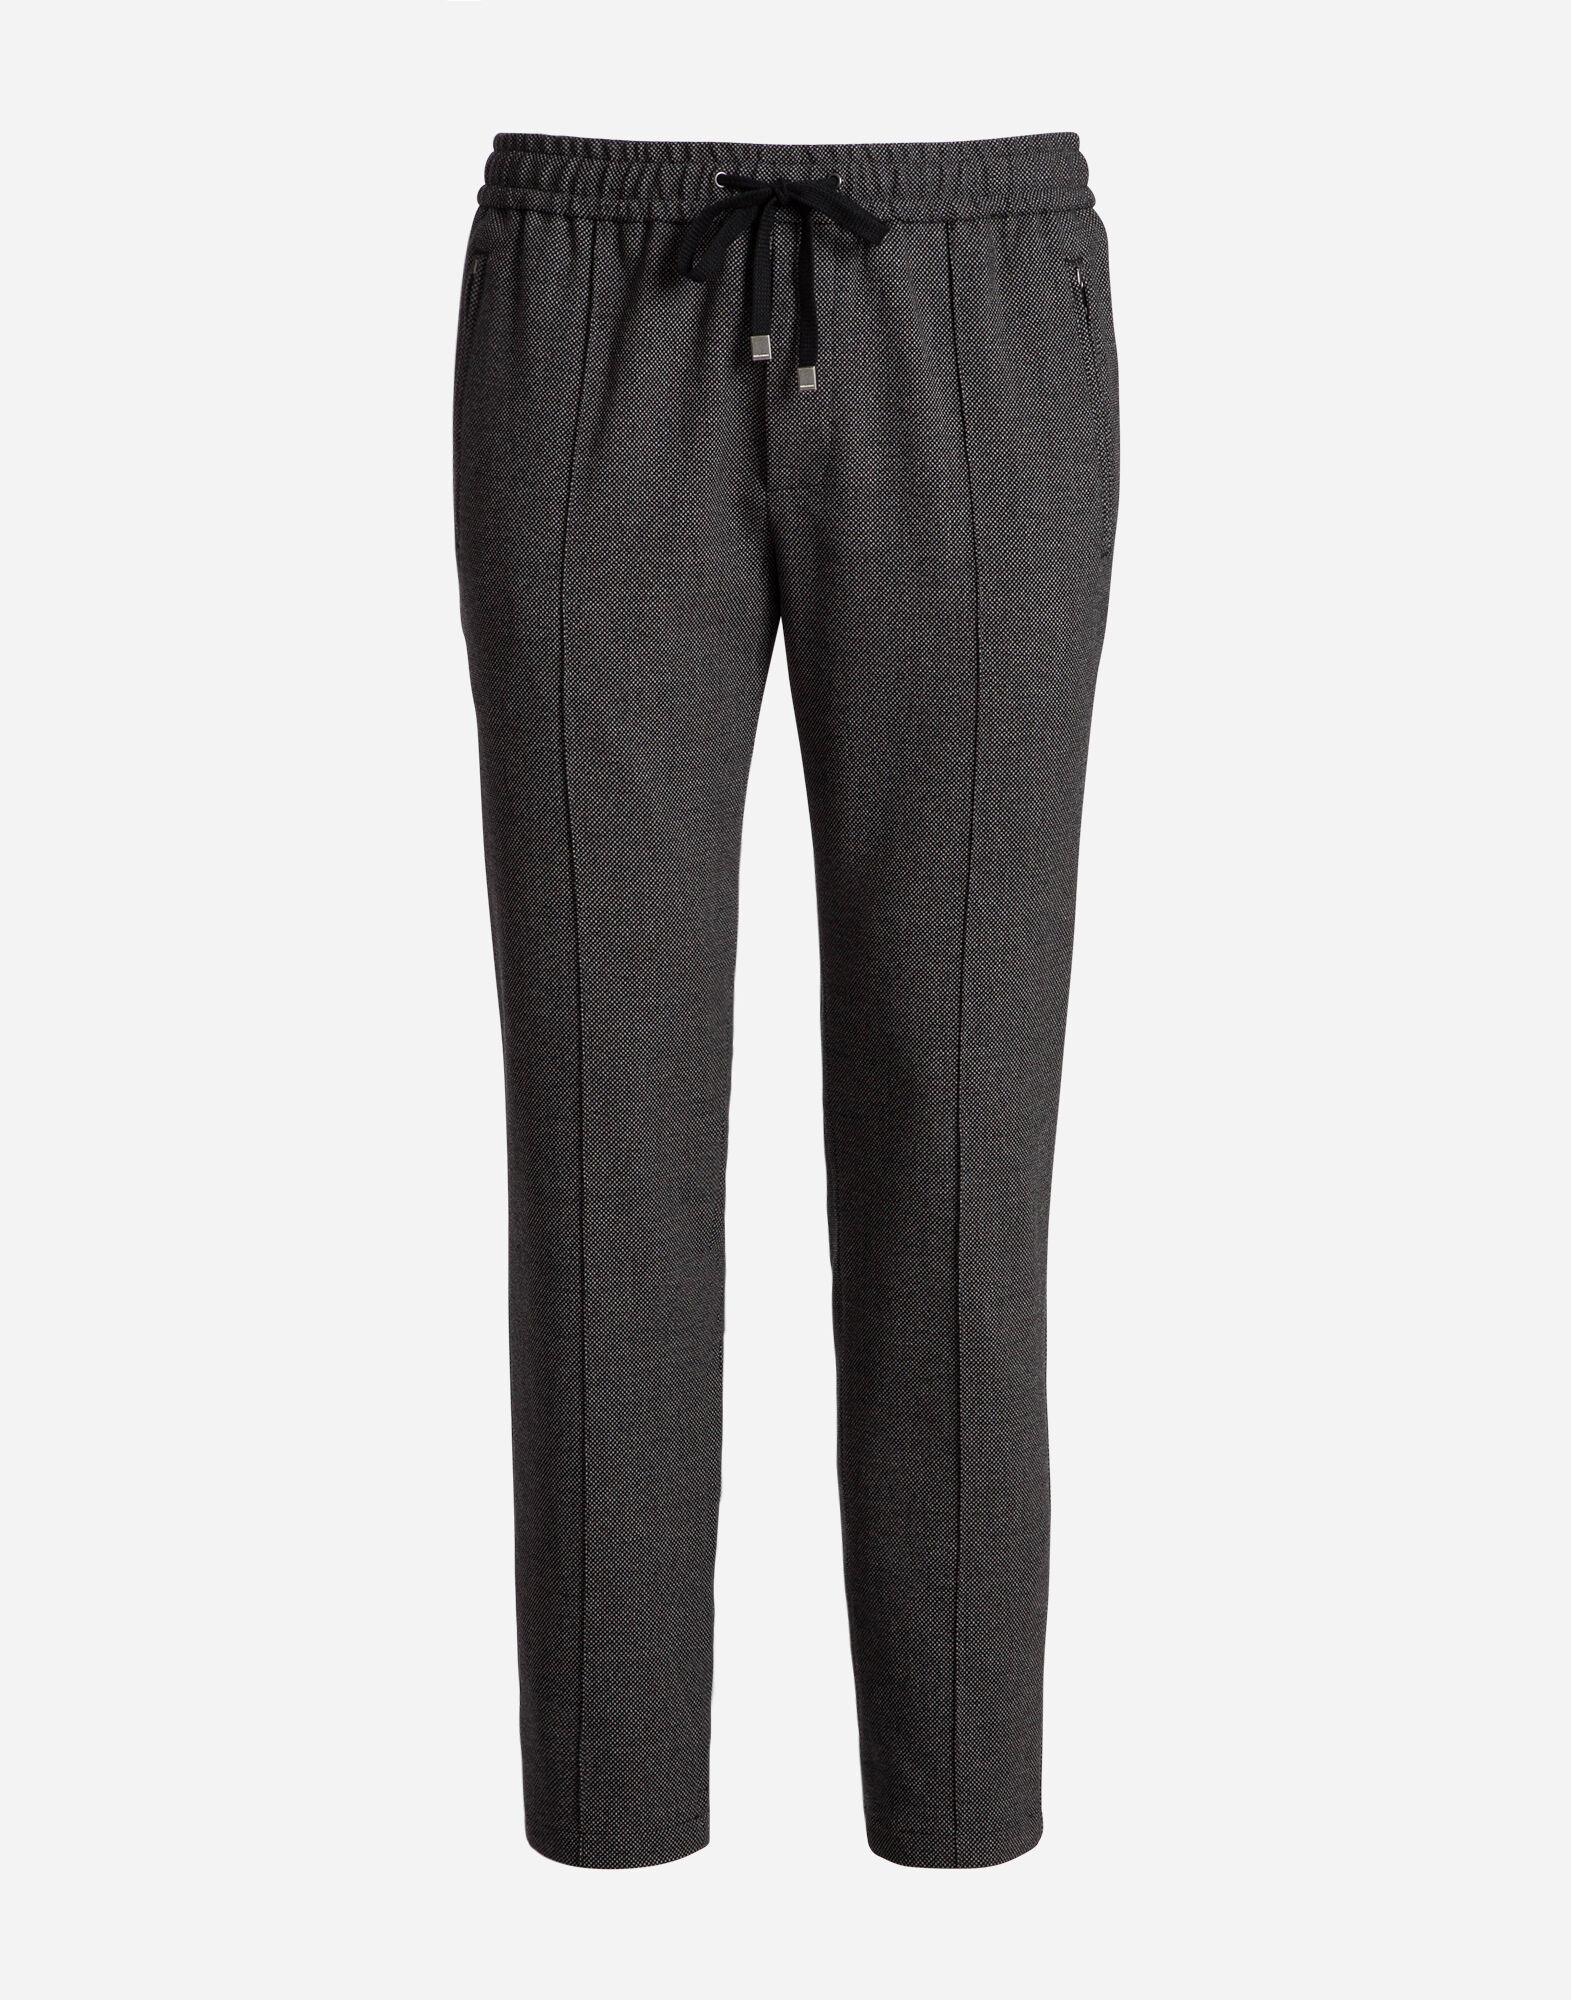 JOGGING PANTS IN COTTON